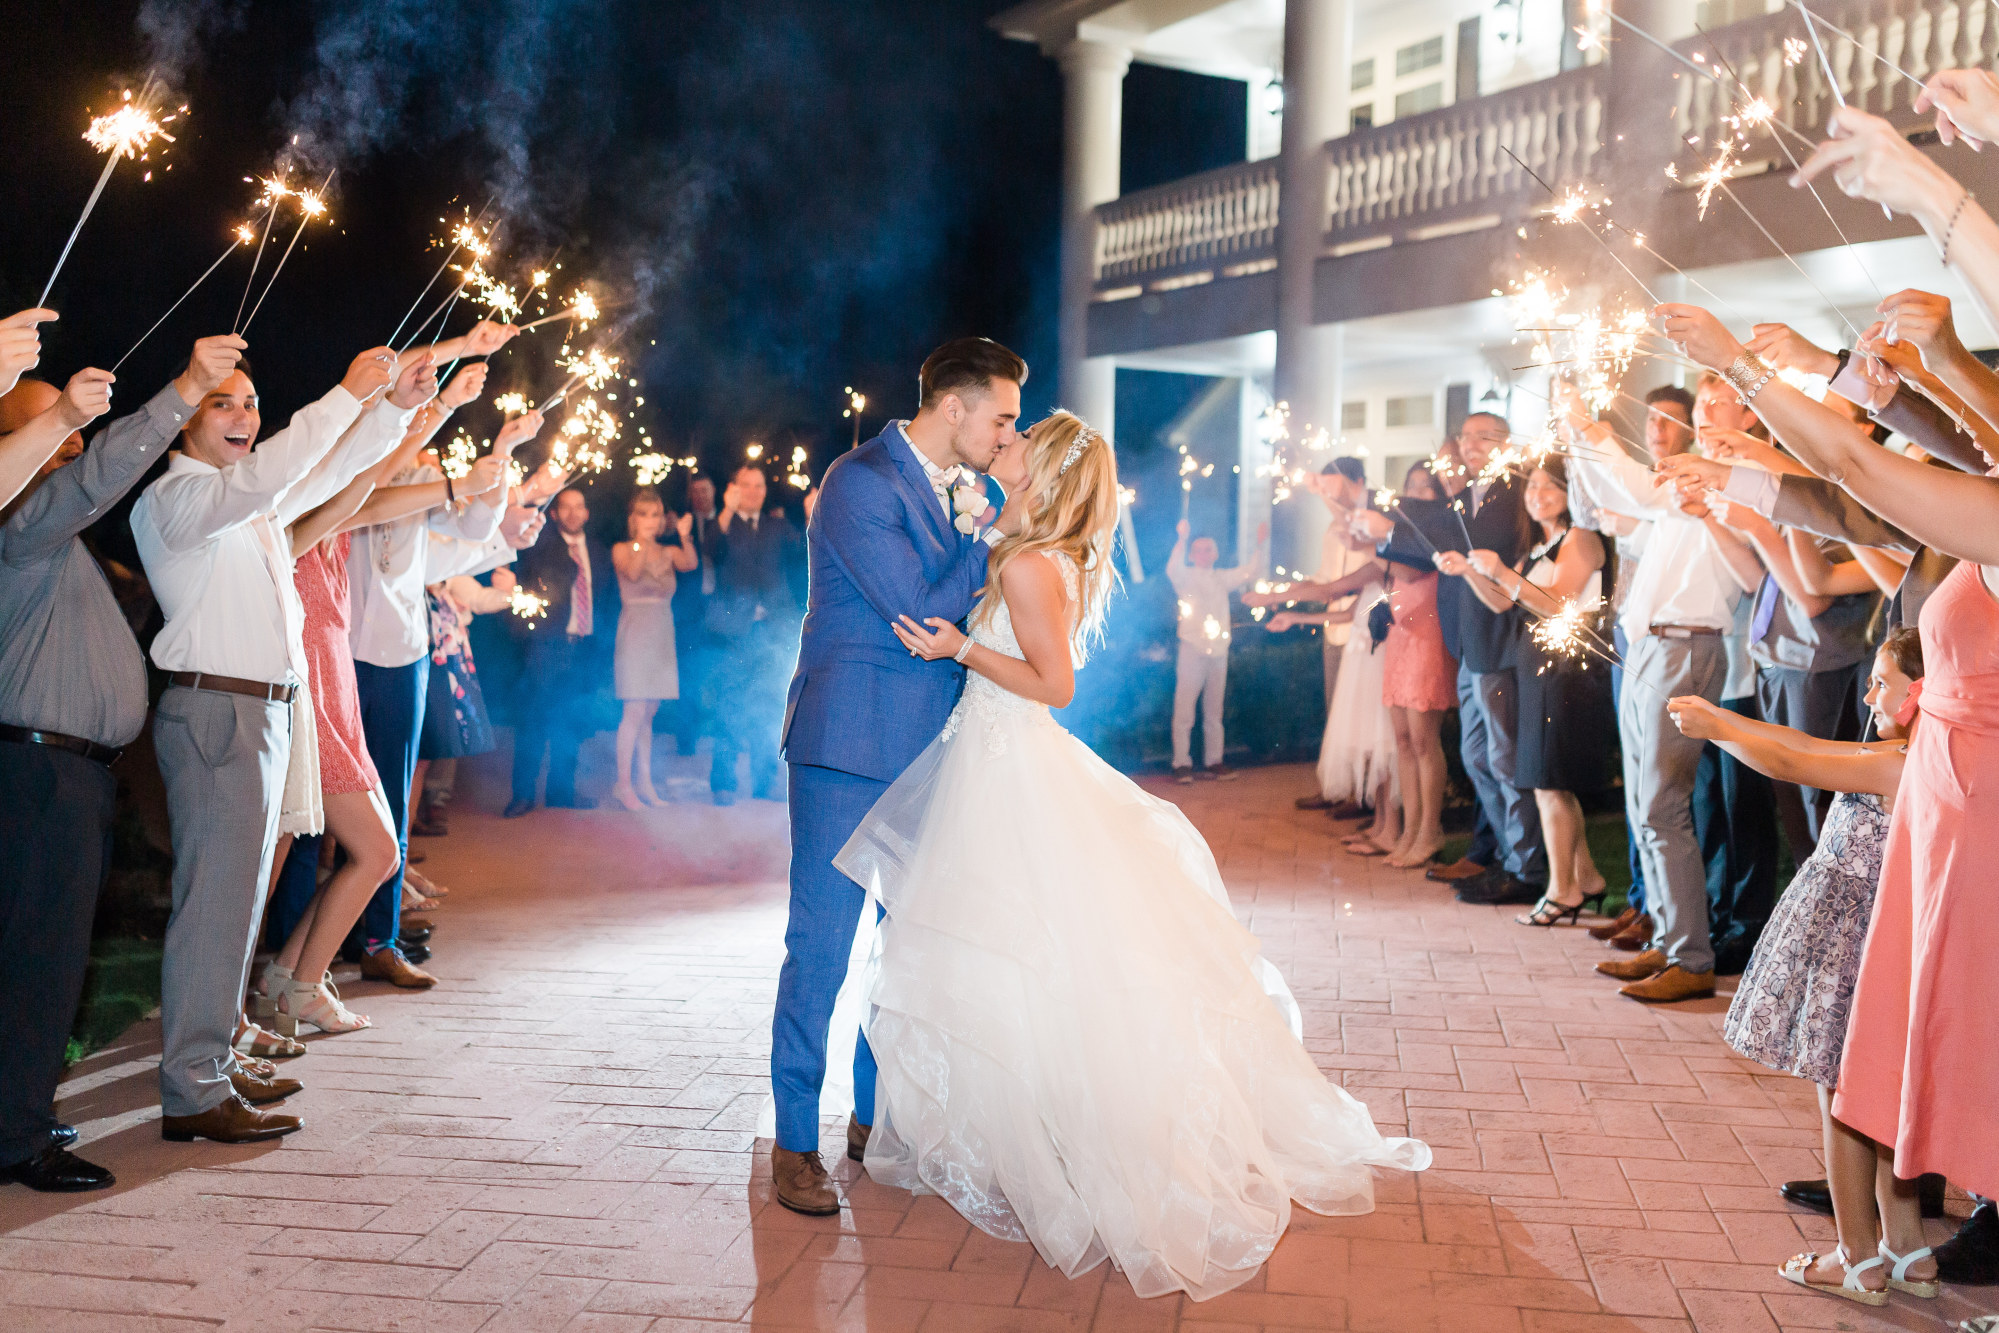 Hannah Way Photography - Dallas wedding photographer - luxury weddings - luxury wedding photographer - dfw wedding photographer - best wedding photographer - Dallas best wedding photographer - the springs - Rockwall manor - sparkler exit